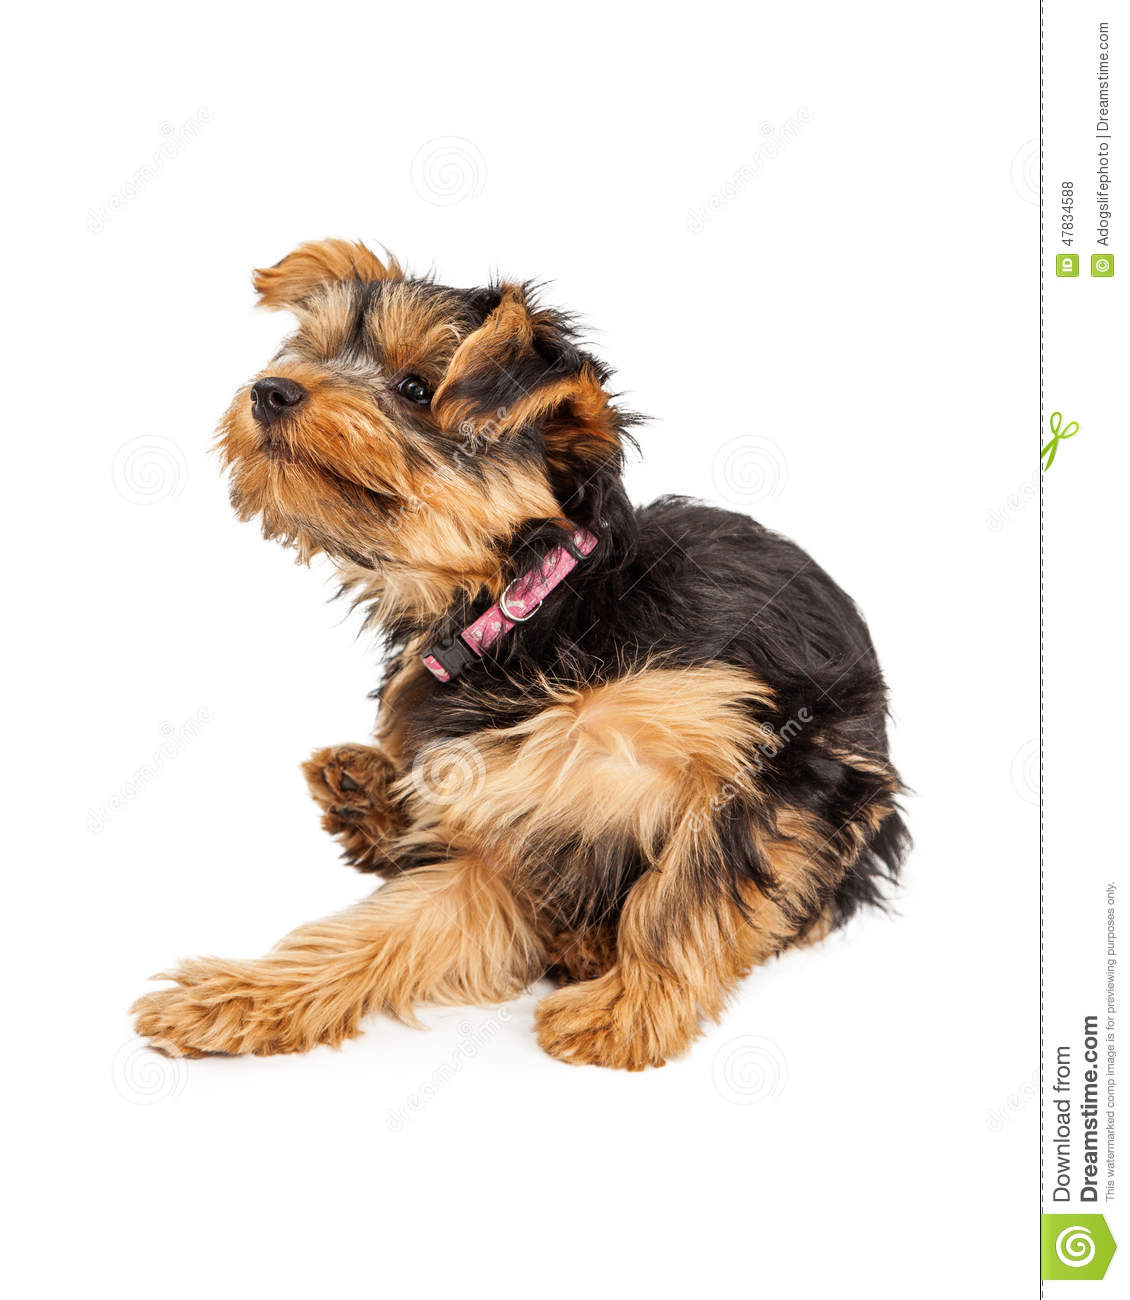 teacup yorkie dog sitting scratching itch cute puppy down 47834588